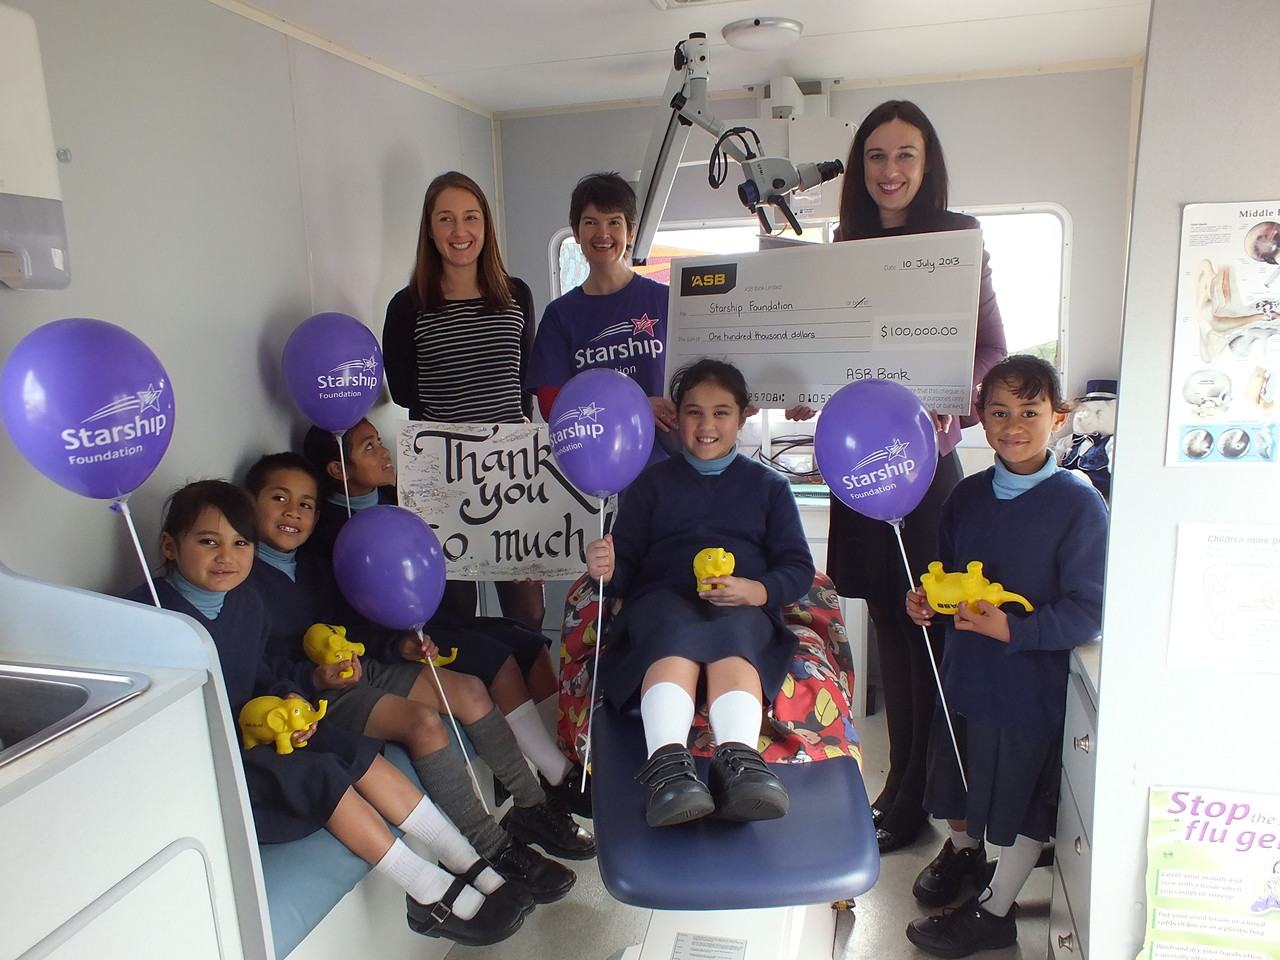 A look inside the mobile ear clinic as ASB present a cheque for $100,000 in 2013.